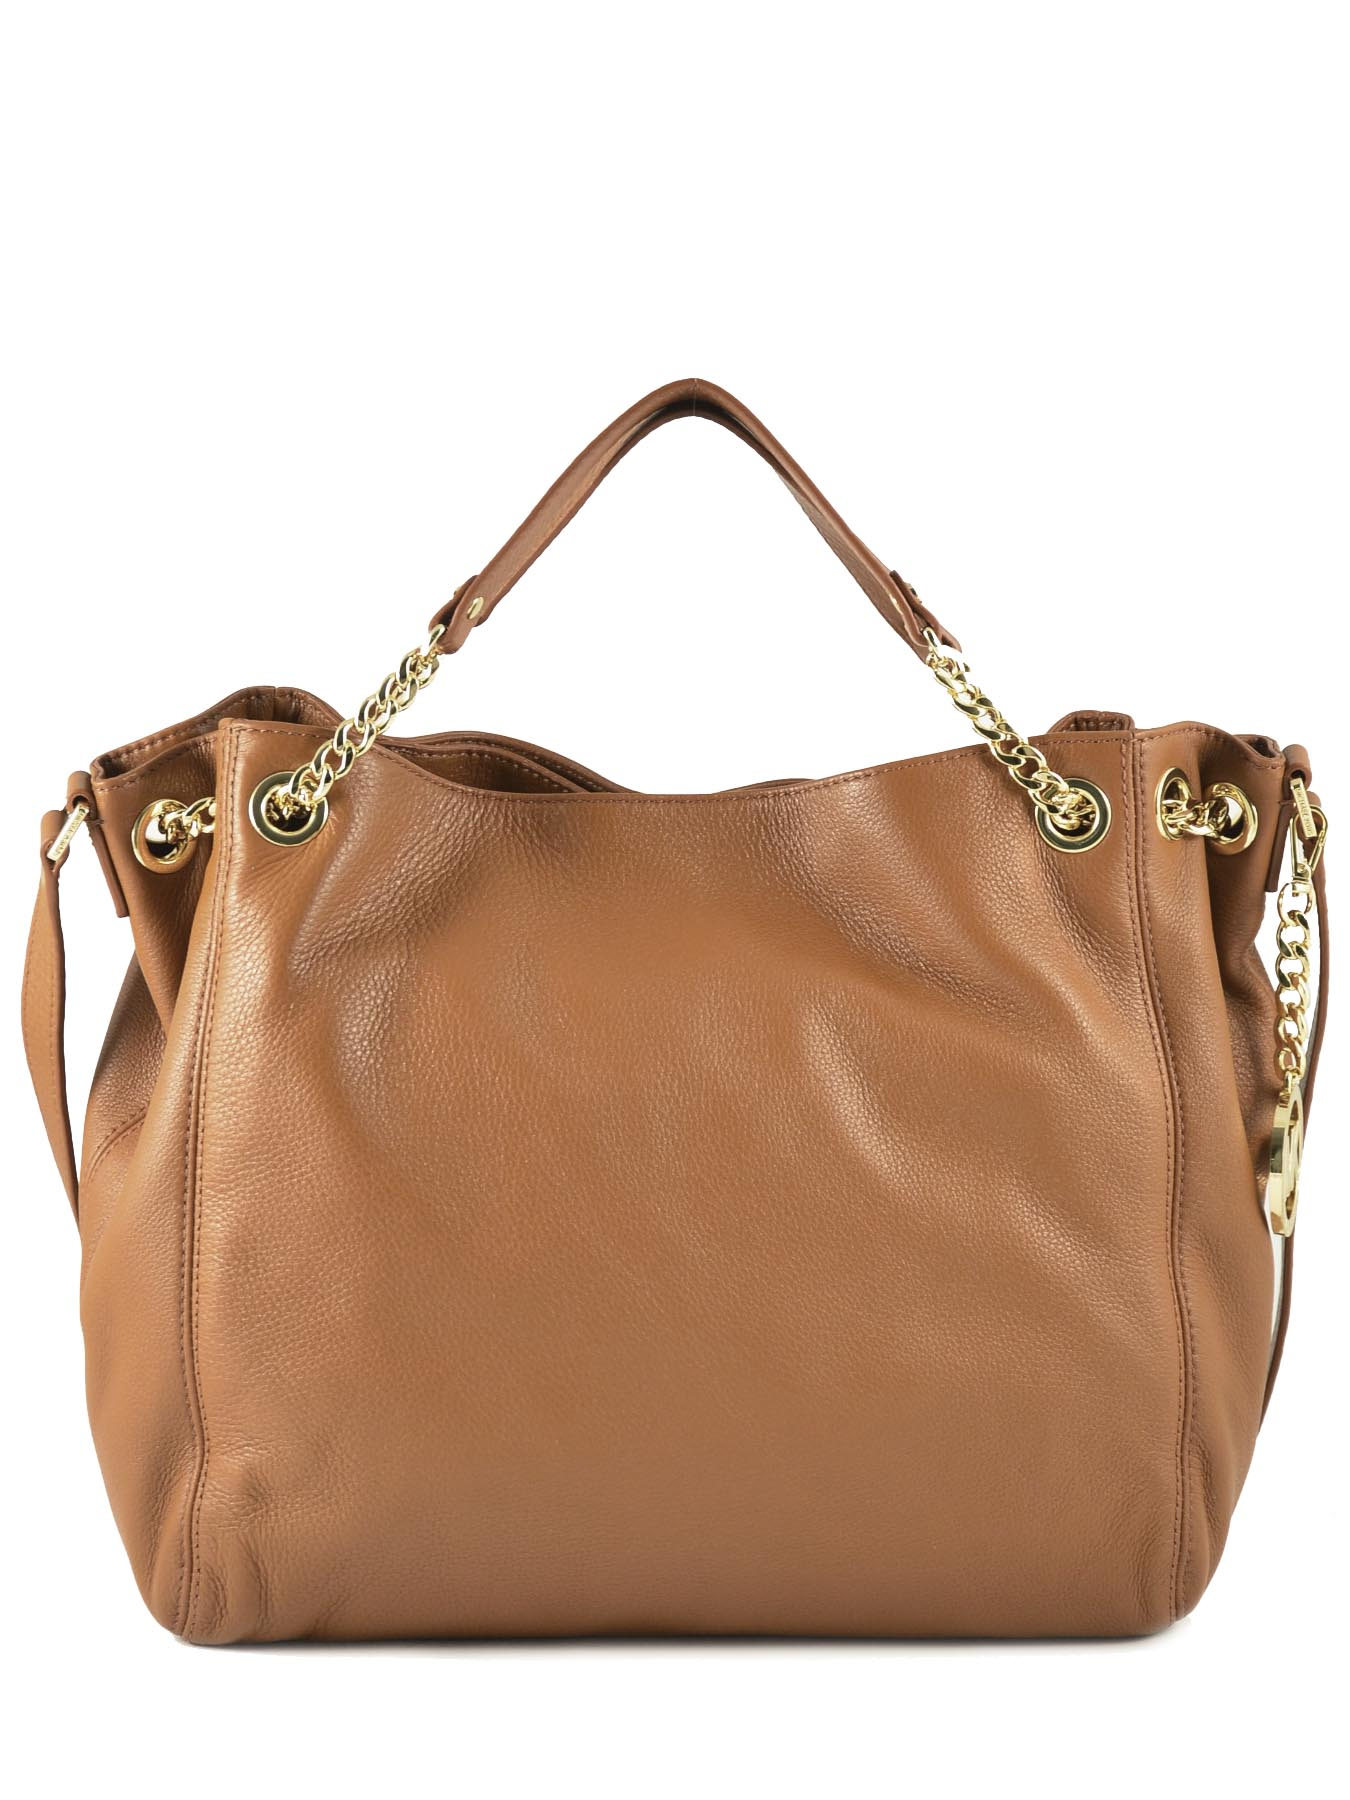 ac72003df7 Sac Cabas Jet Set Michael Kors - Le Sac à Main